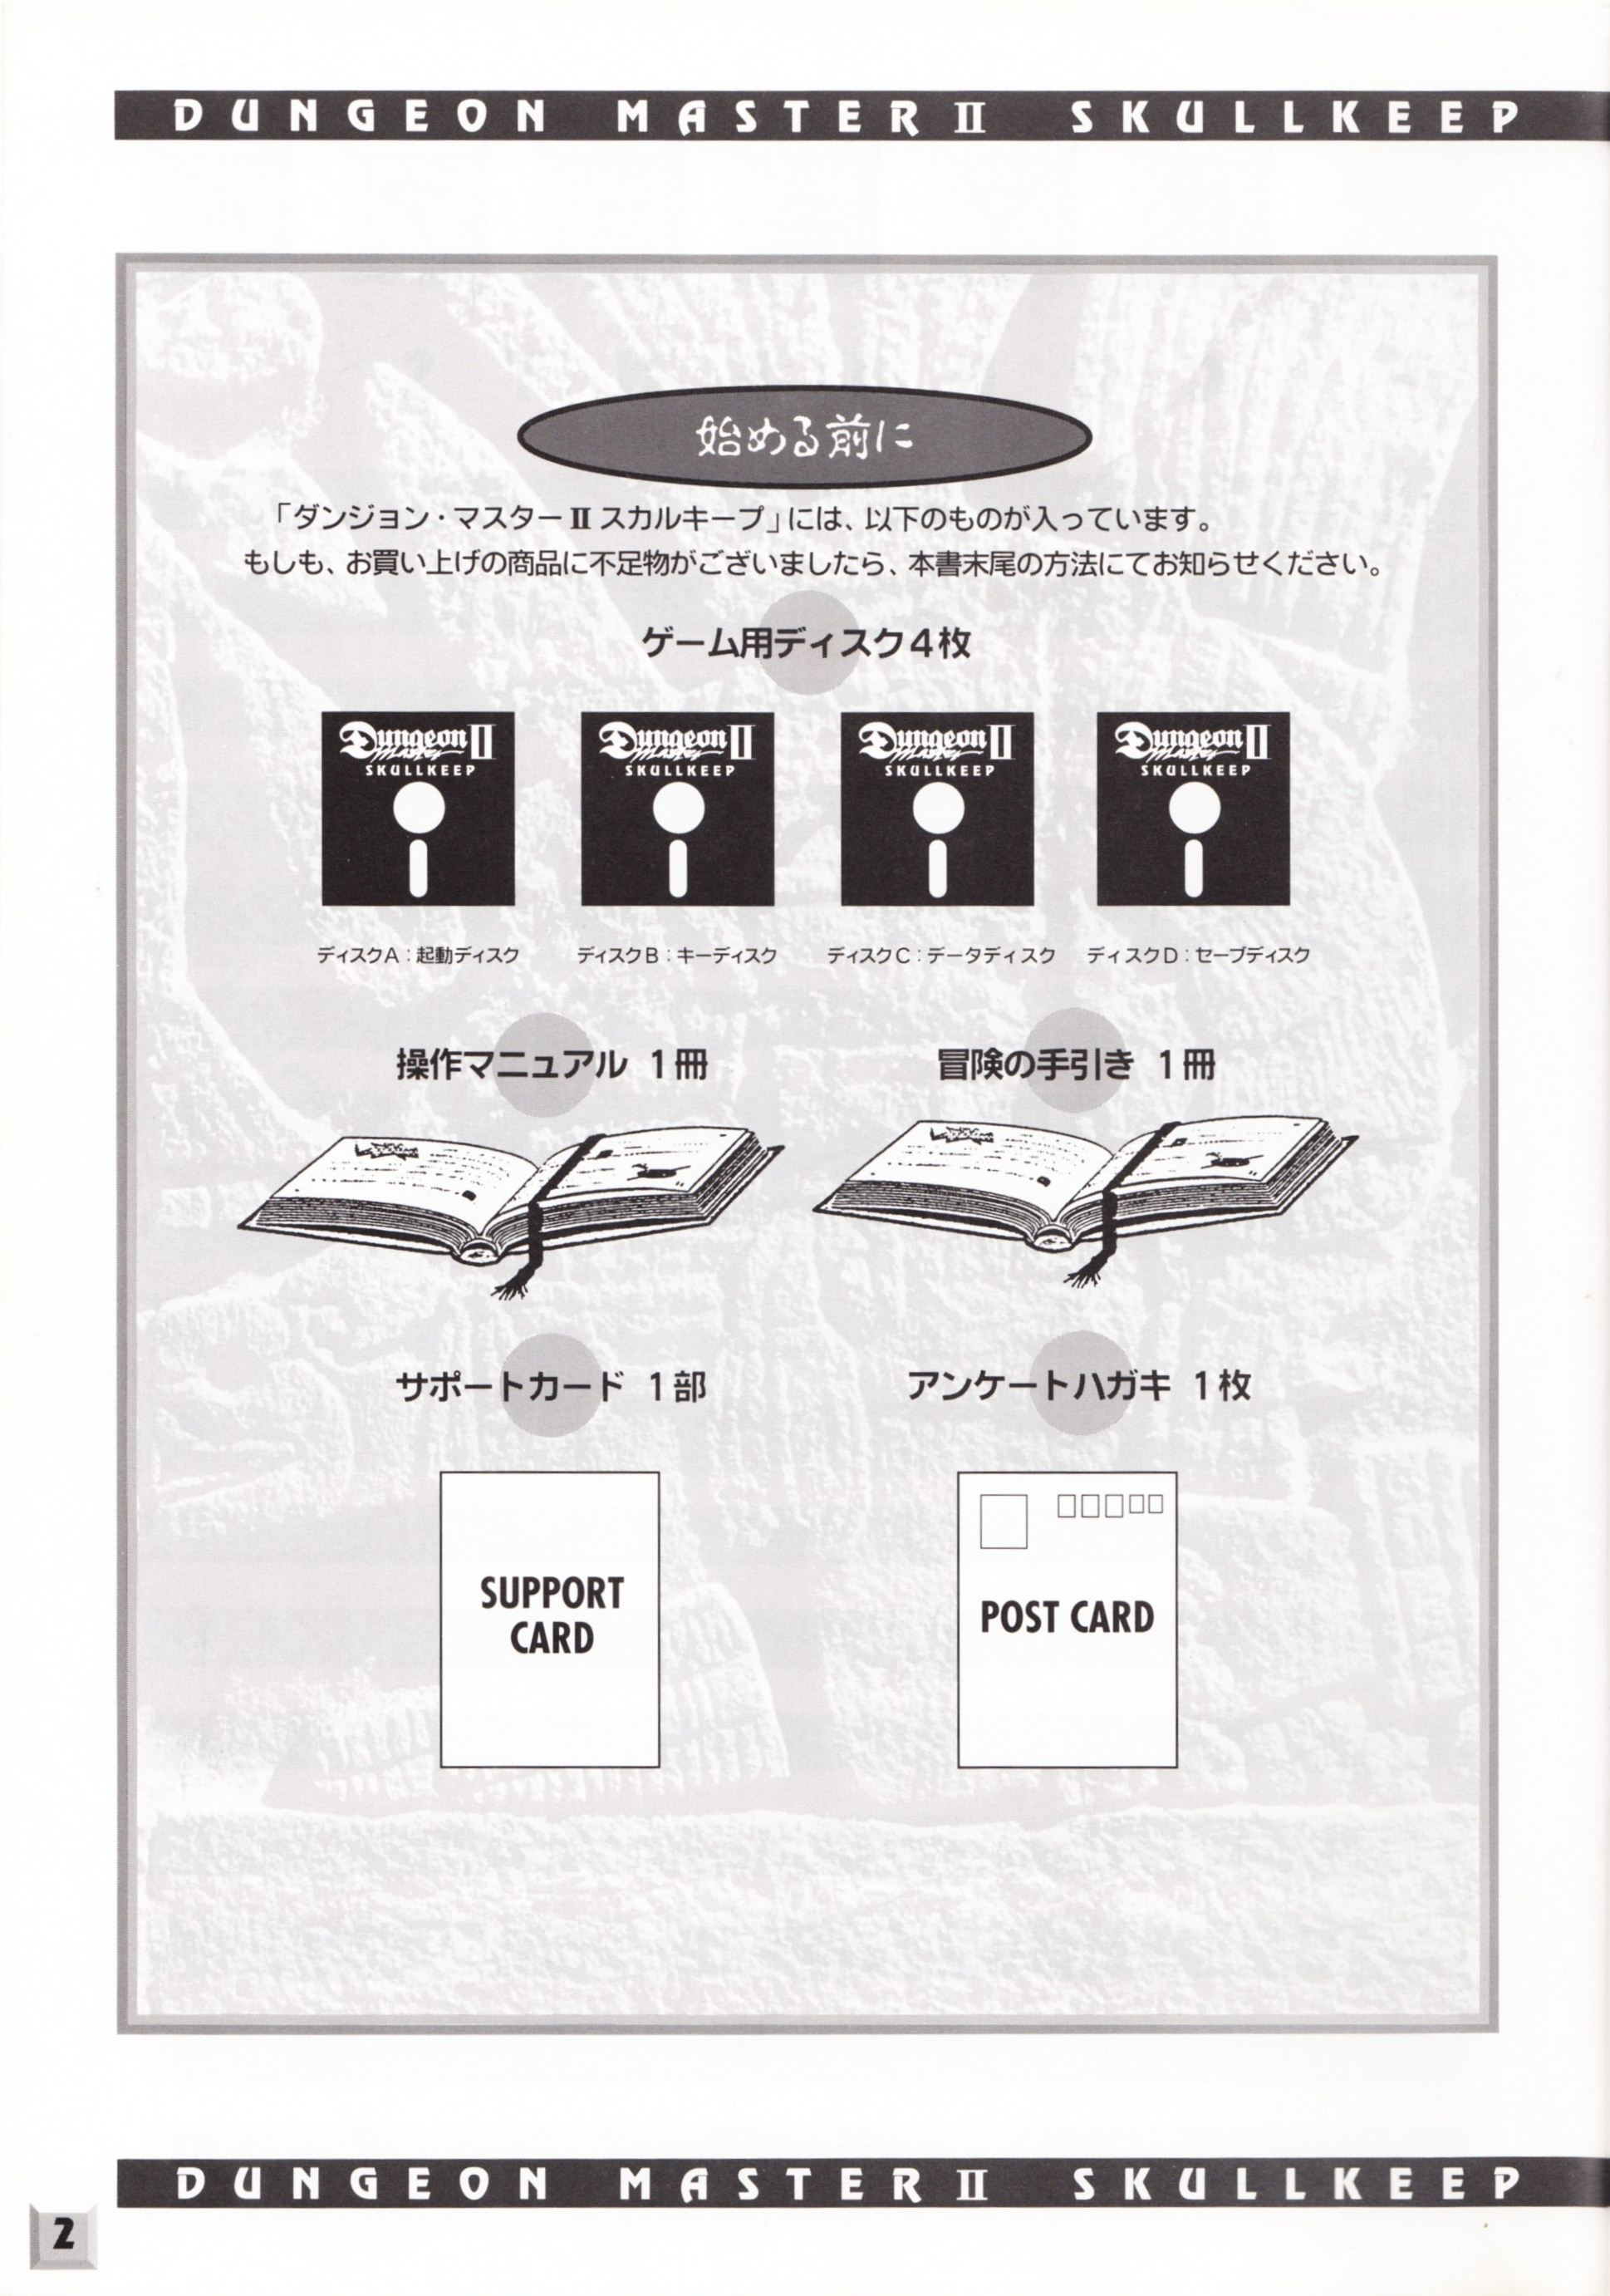 Game - Dungeon Master II - JP - PC-9801 - 5.25-inch - An Operation Manual - Page 004 - Scan